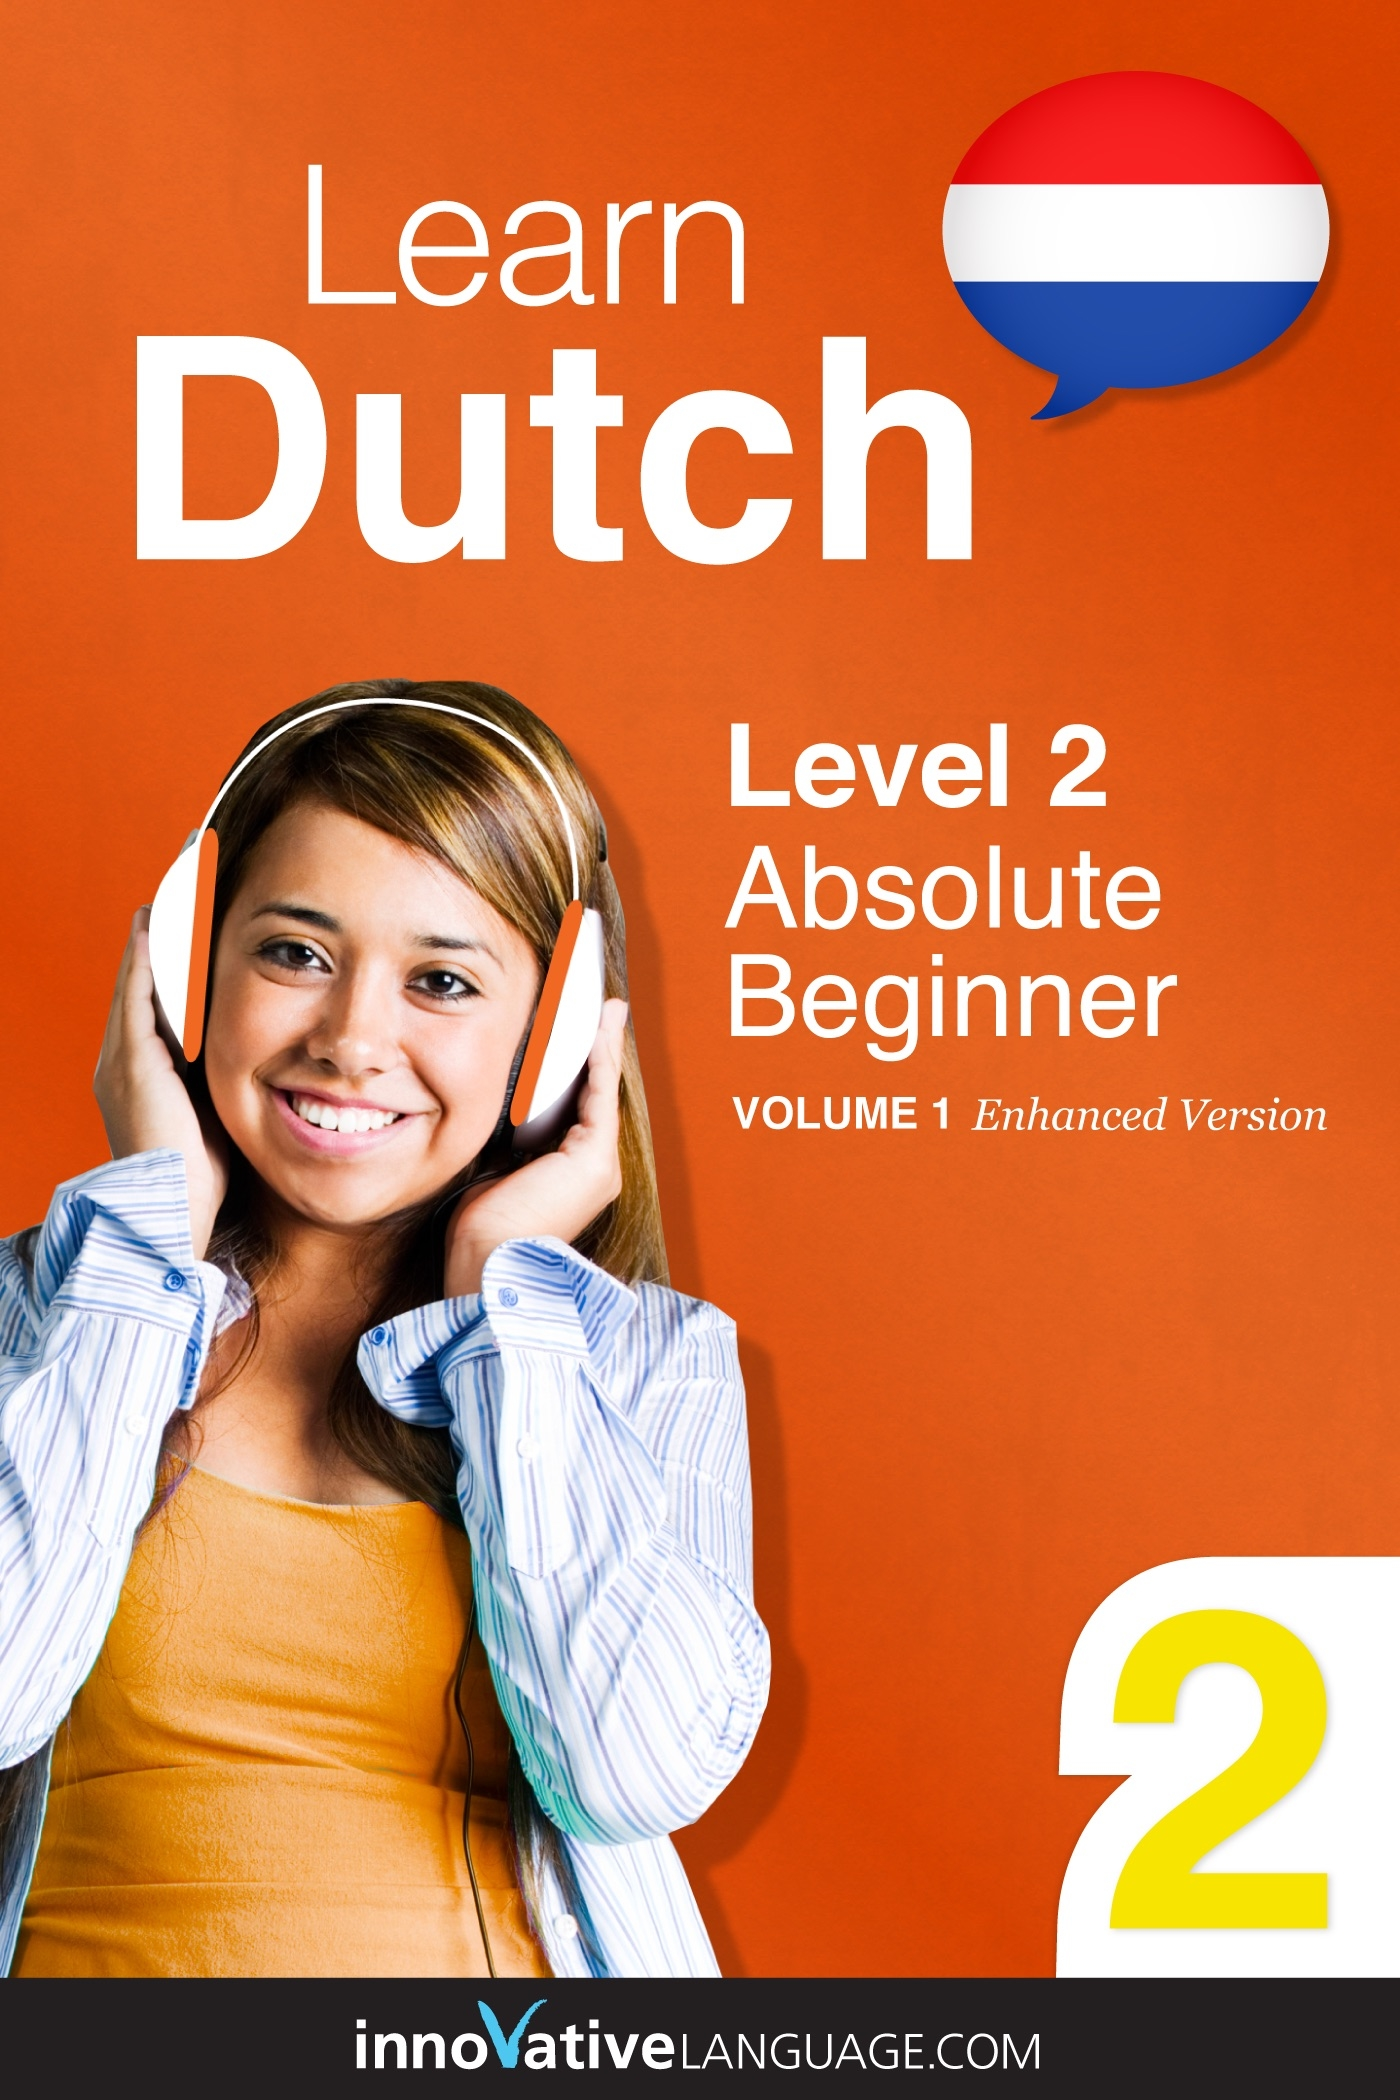 [eBook] Learn Dutch - Level 2: Absolute Beginner